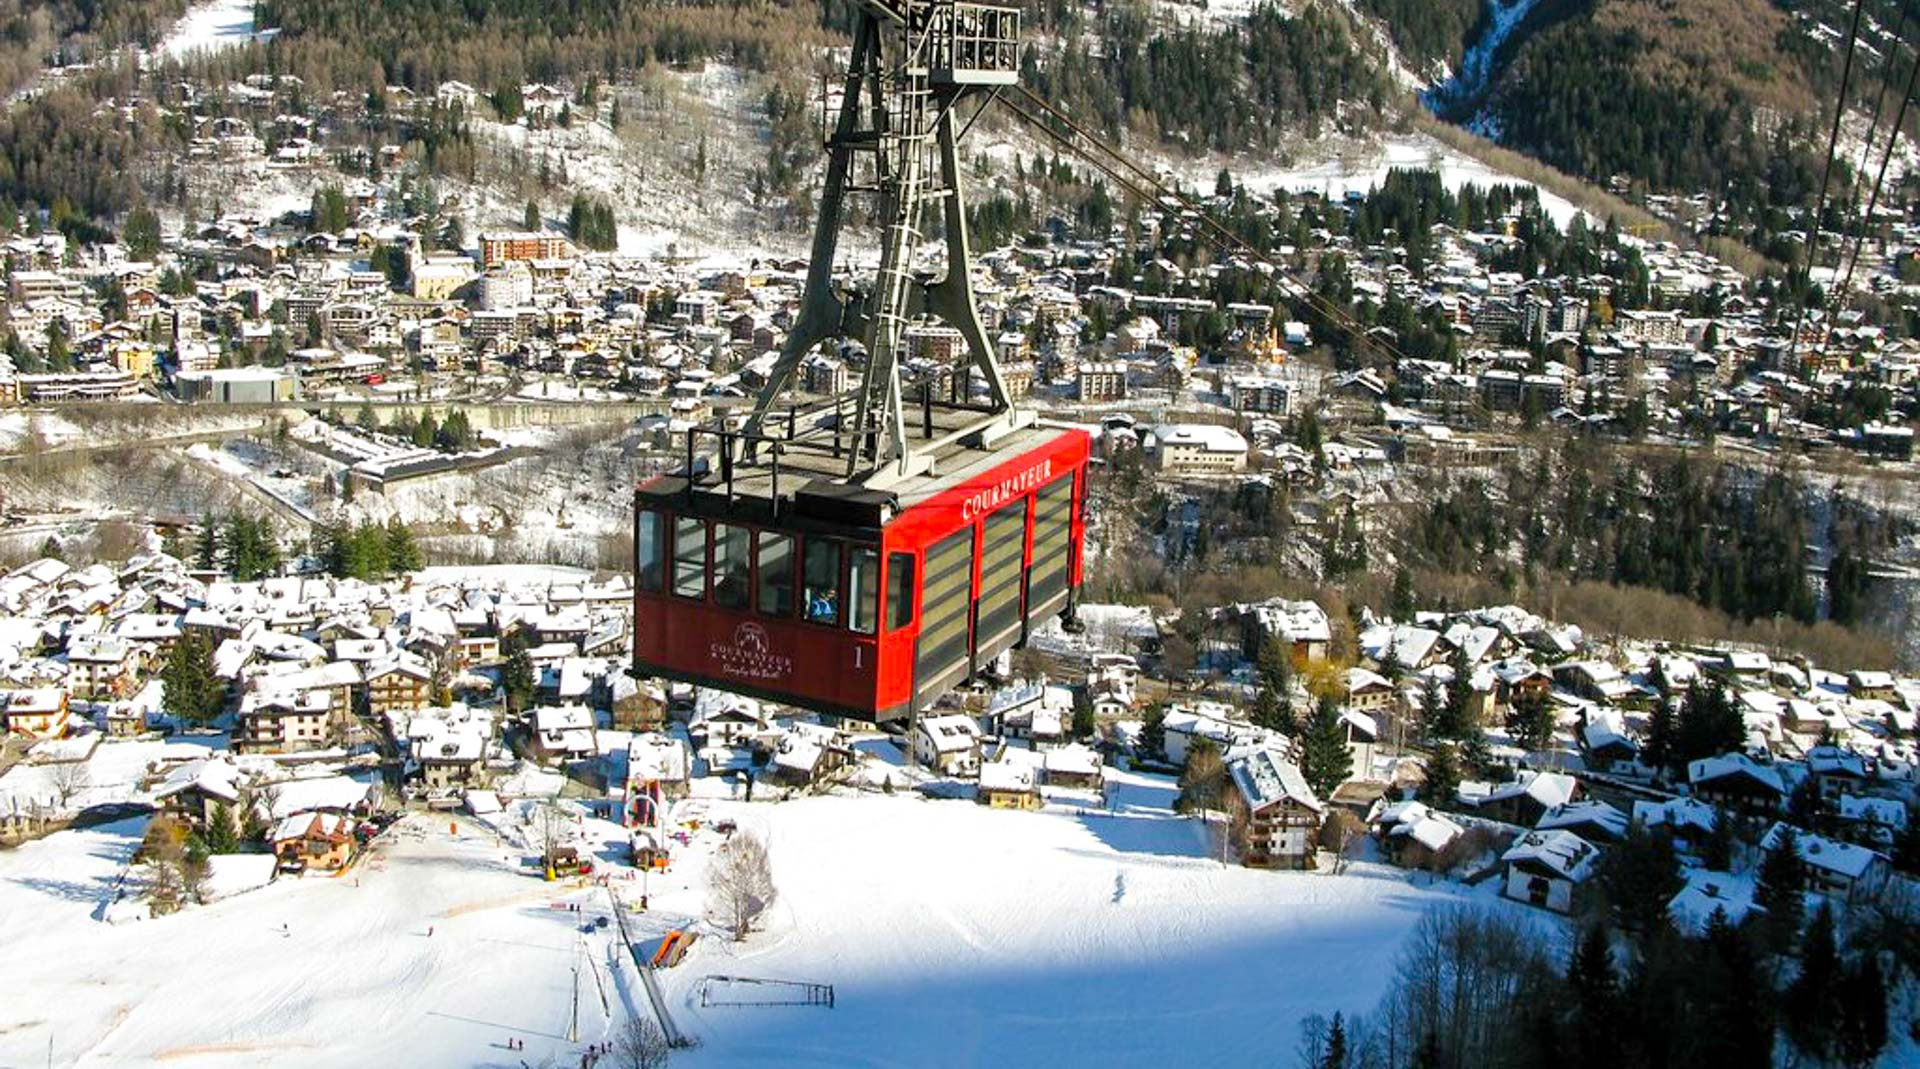 The giant red cable car rises up from the ski resort of Courmayeur, carrying skiers to the ski slopes above